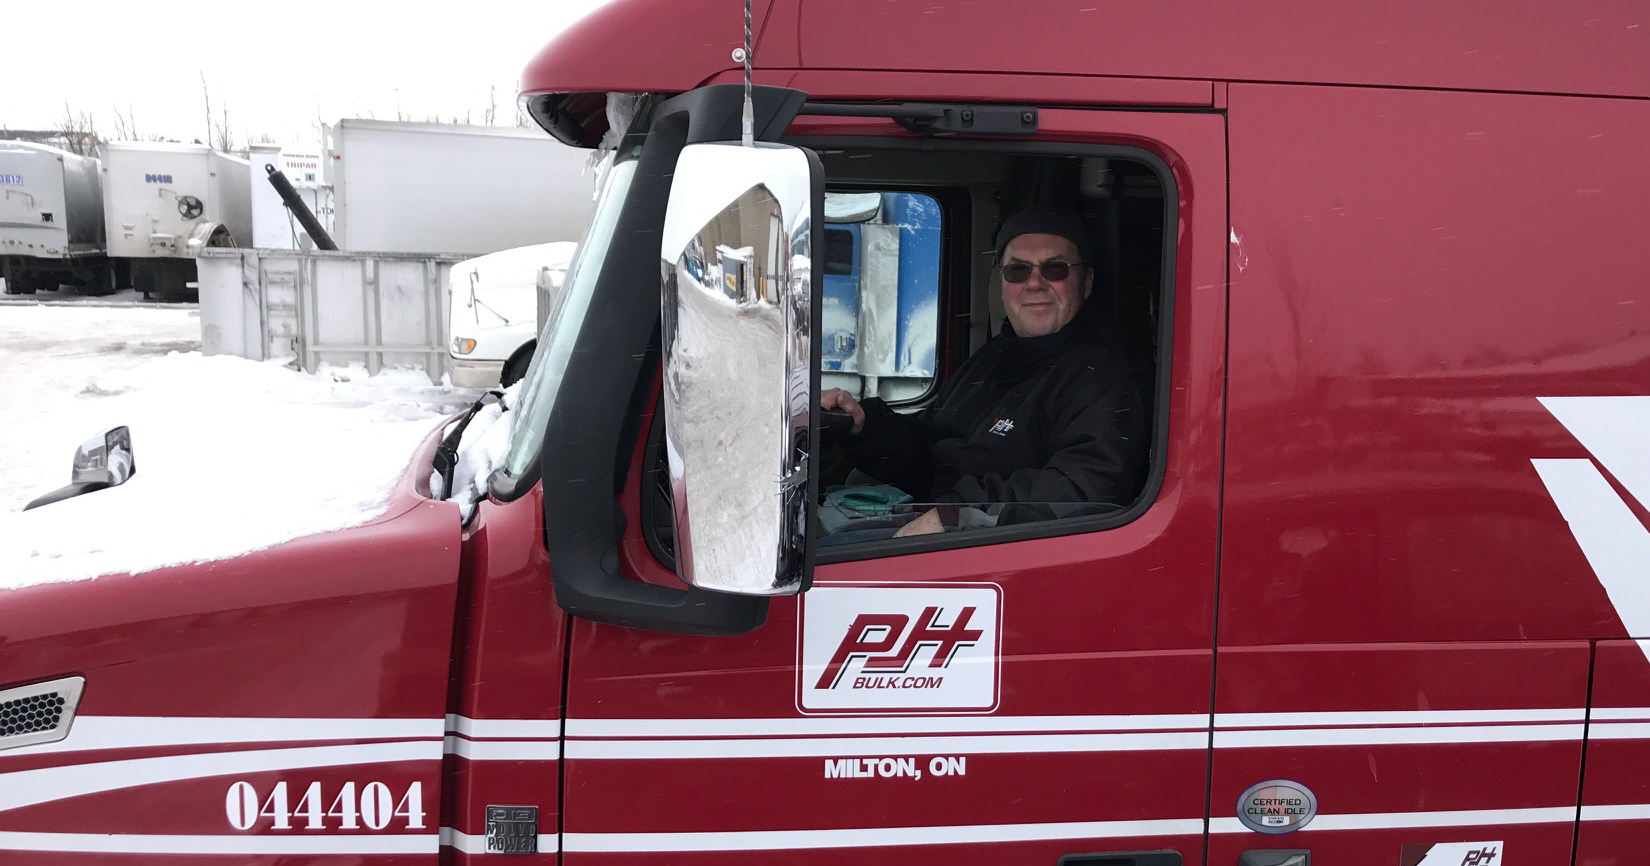 John on his last day in is big rig